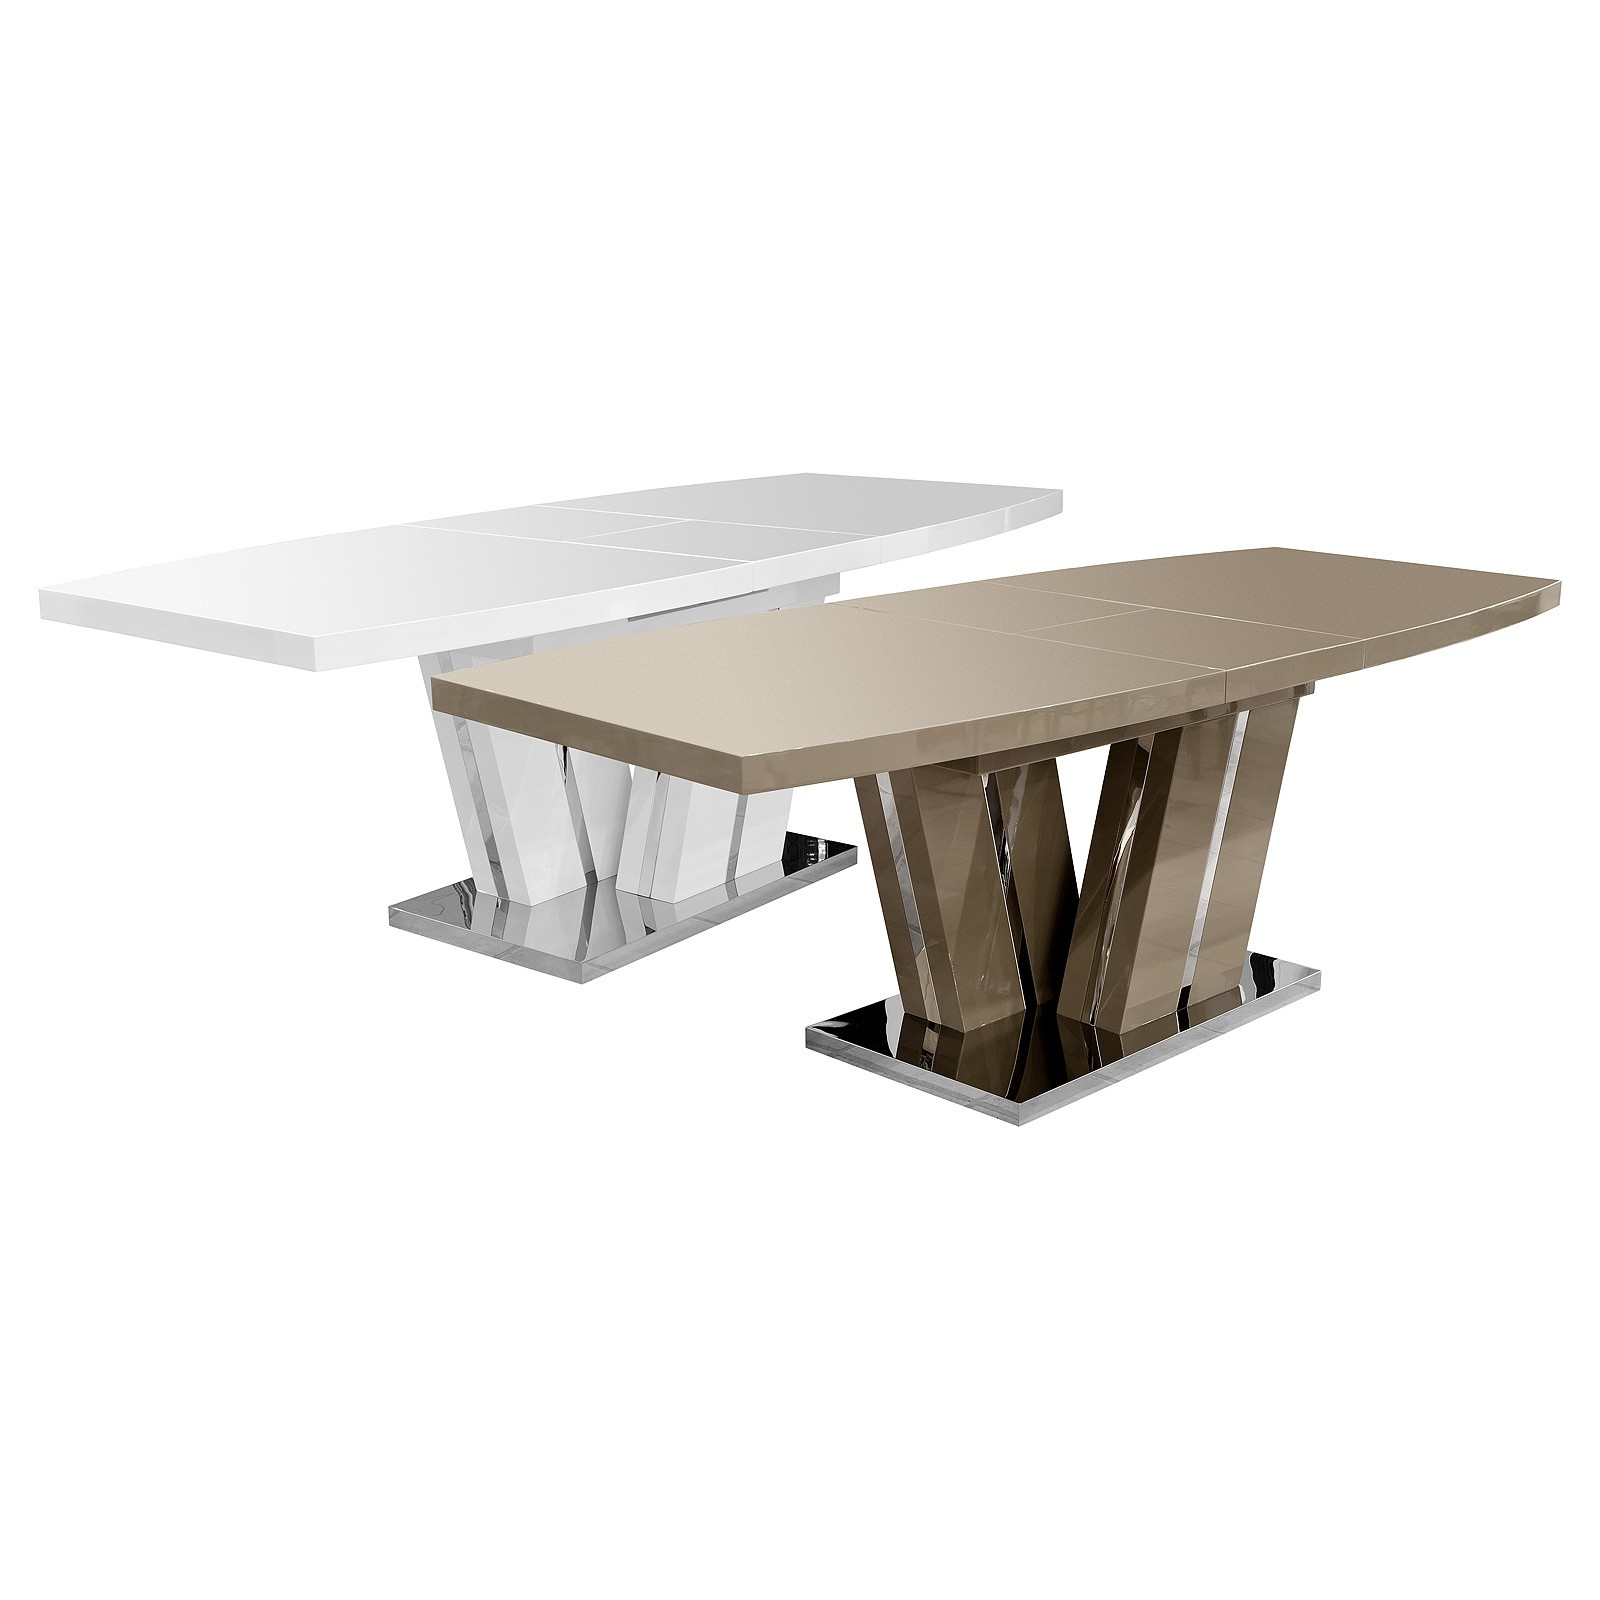 Geremia Extending High Gloss Dining Table – Be Fabulous! Throughout Best And Newest High Gloss Extending Dining Tables (View 12 of 25)